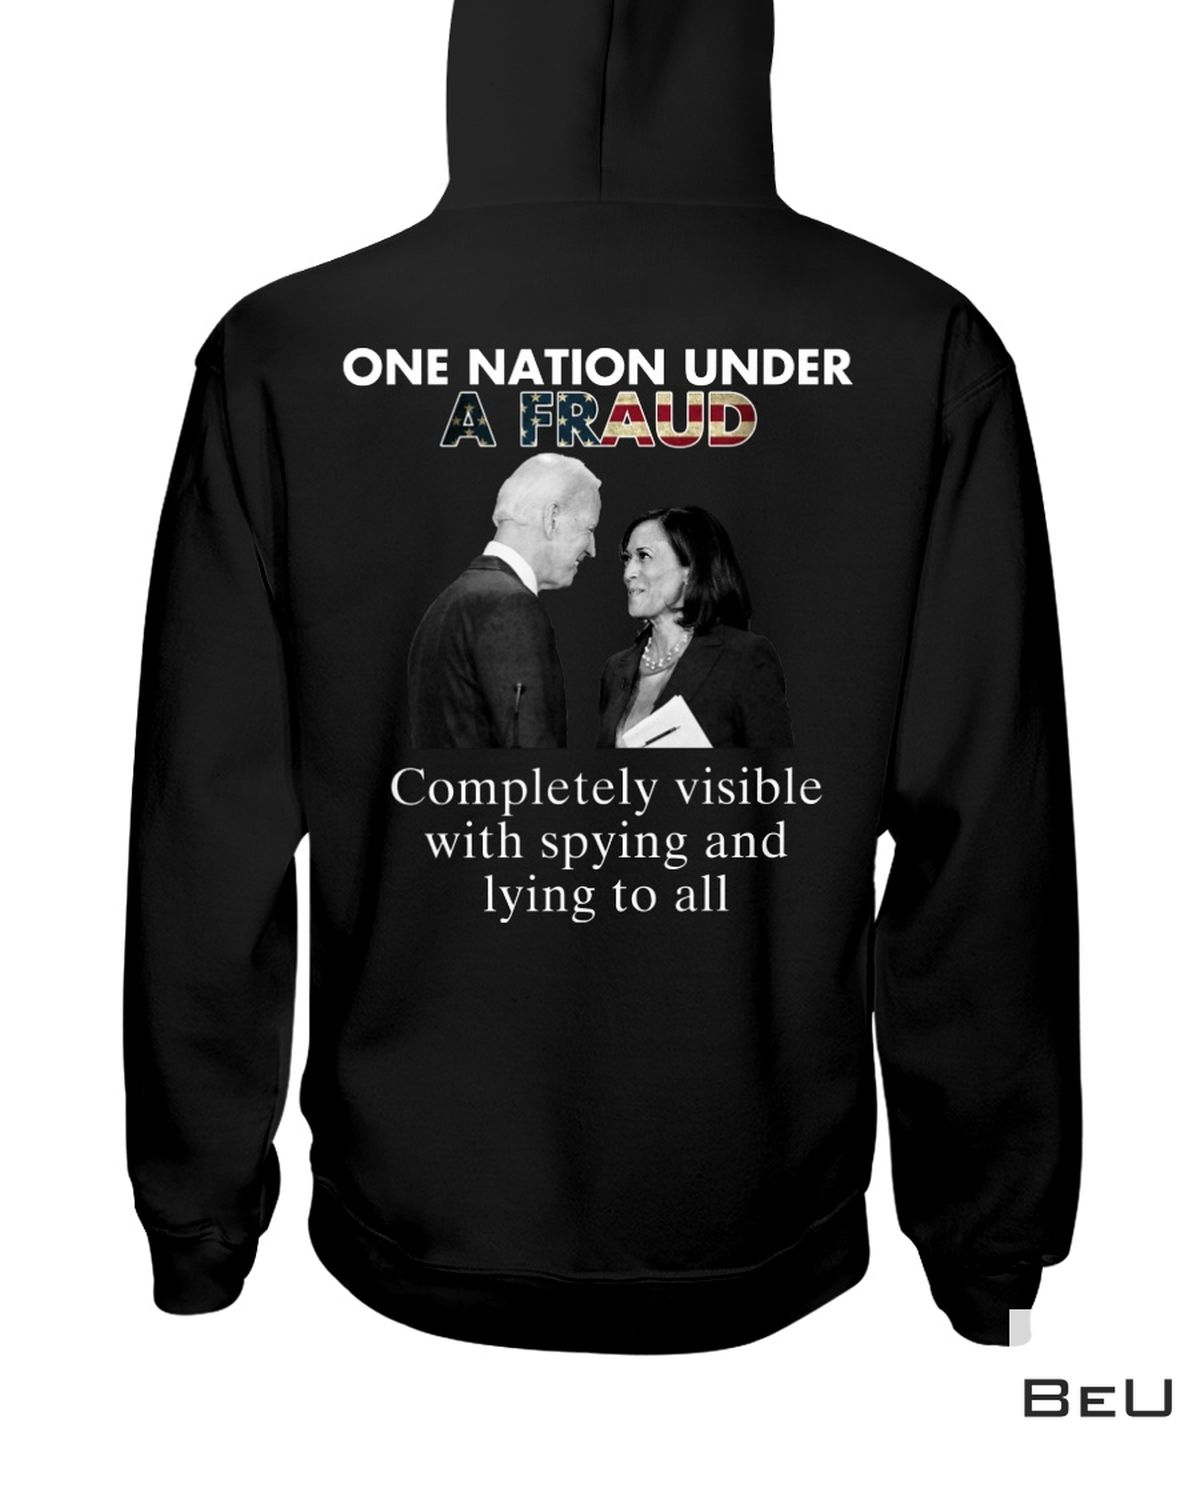 Mother's Day Gift One Nation Under A Fraud Completely Visible With Spying And Lying To All Biden And Harris Shirt, hoodie, tank top